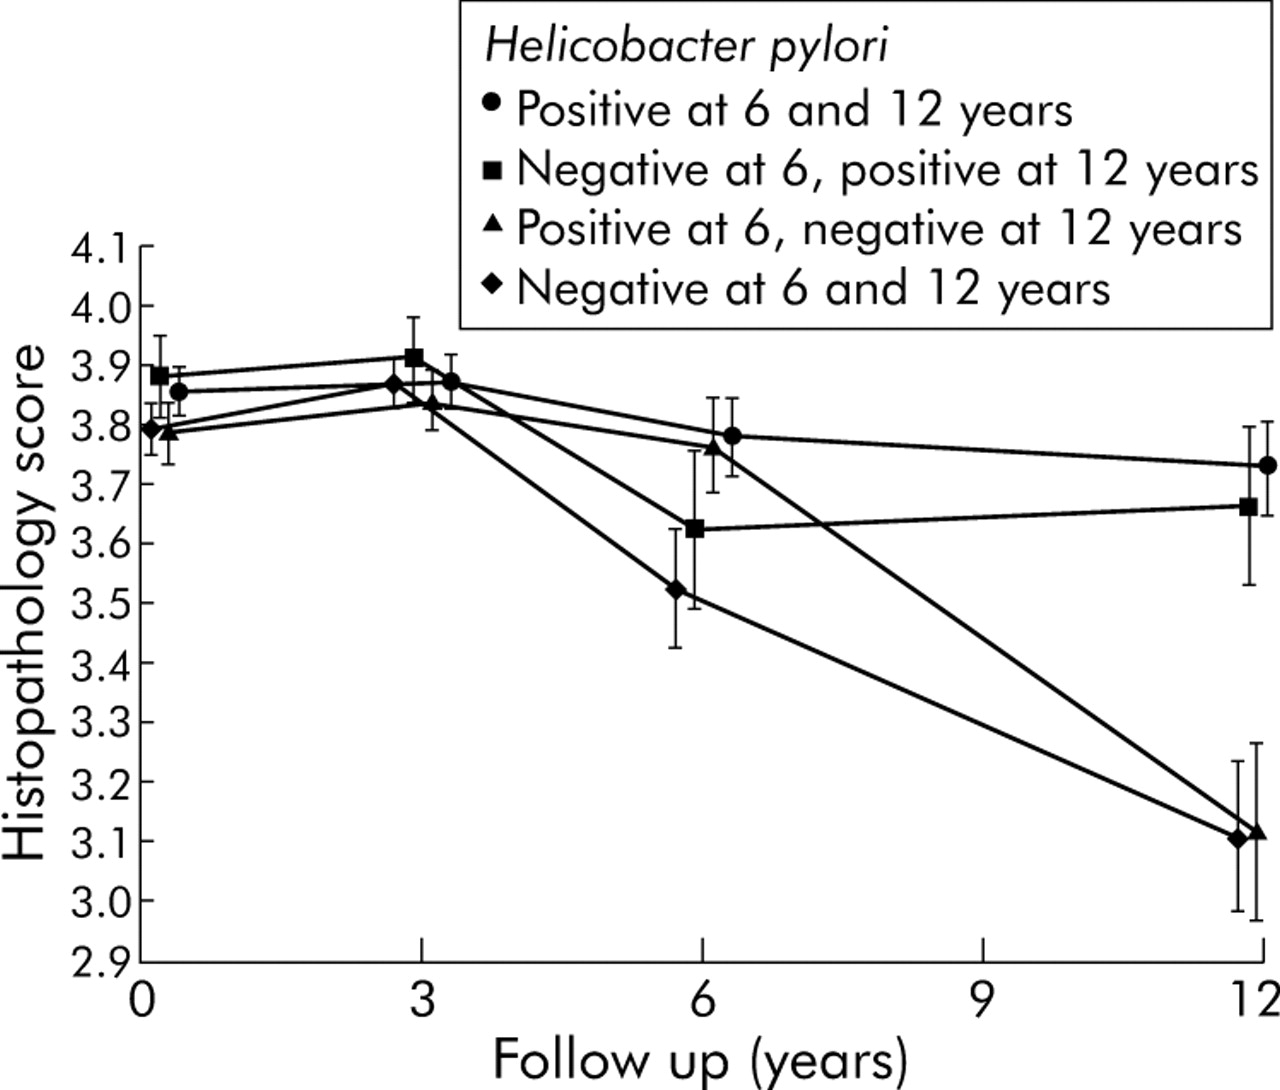 Long term follow up of patients treated for Helicobacter